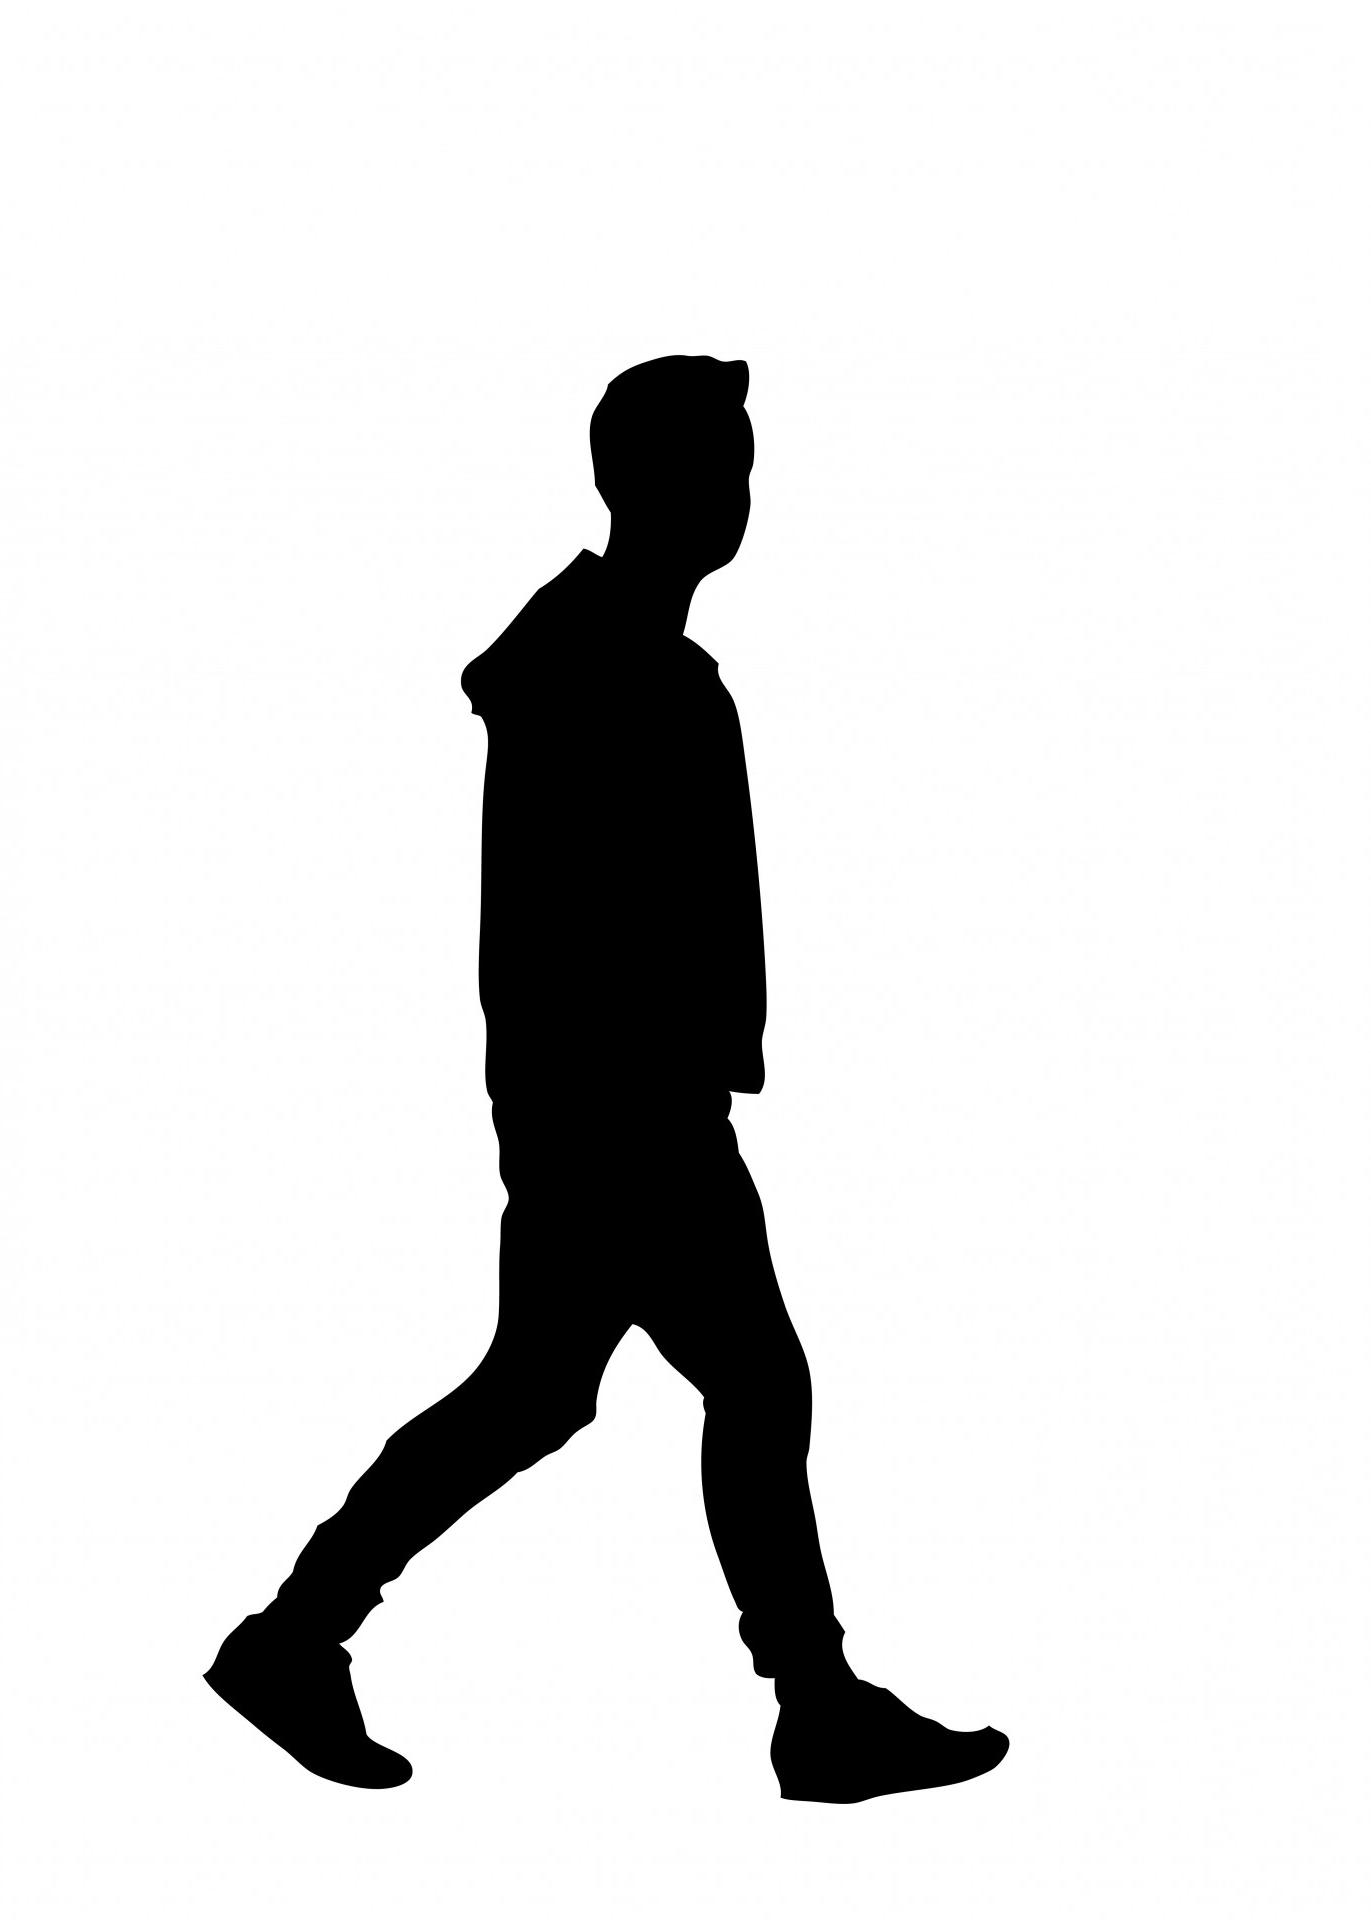 1371x1920 Best Hd Amigo The Primordial Man Clipart People Walking No Photos